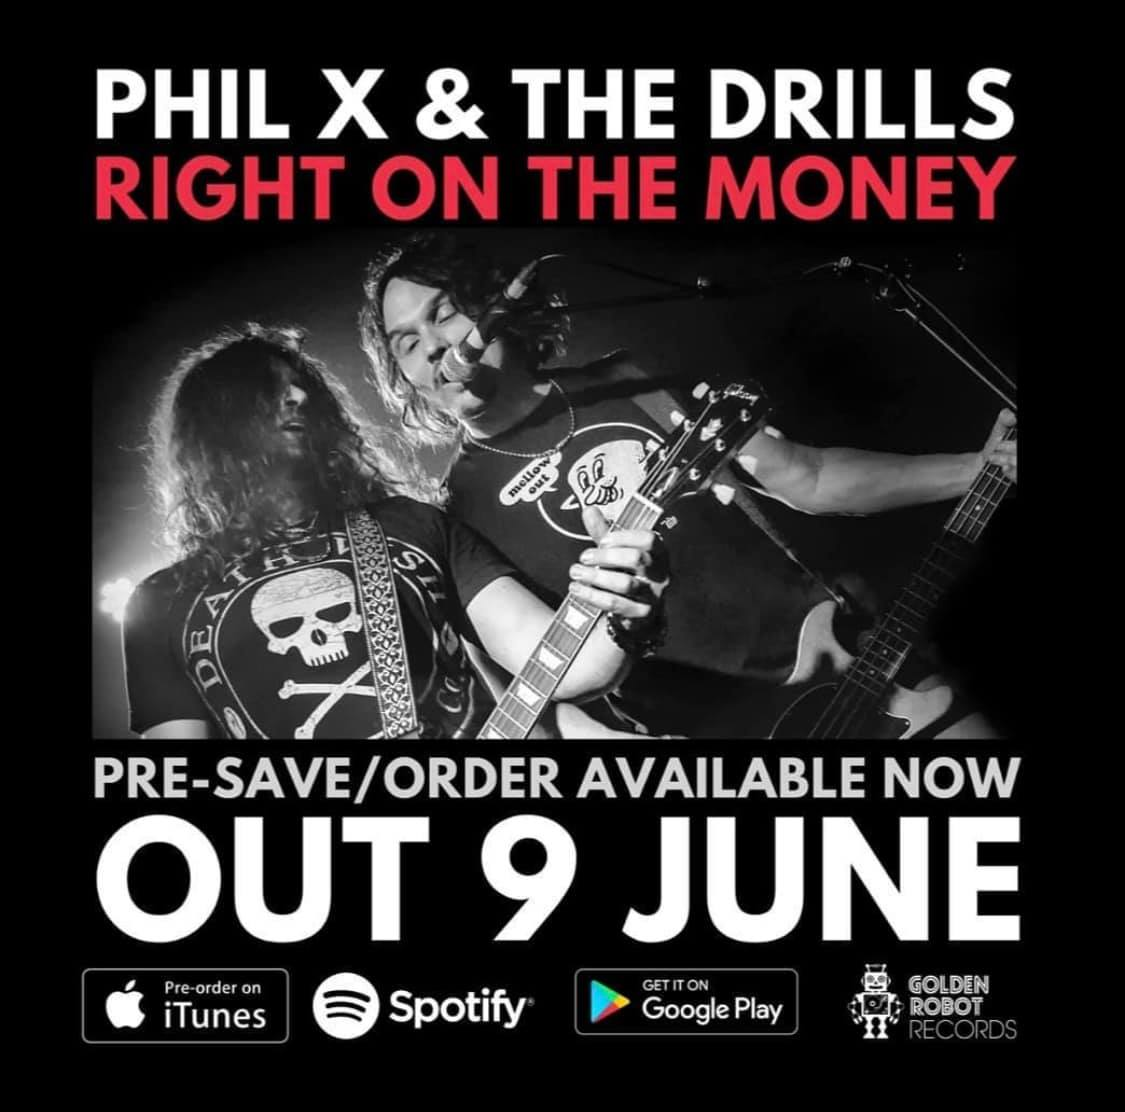 single release Right On The Money Phil X & The DRILLS.